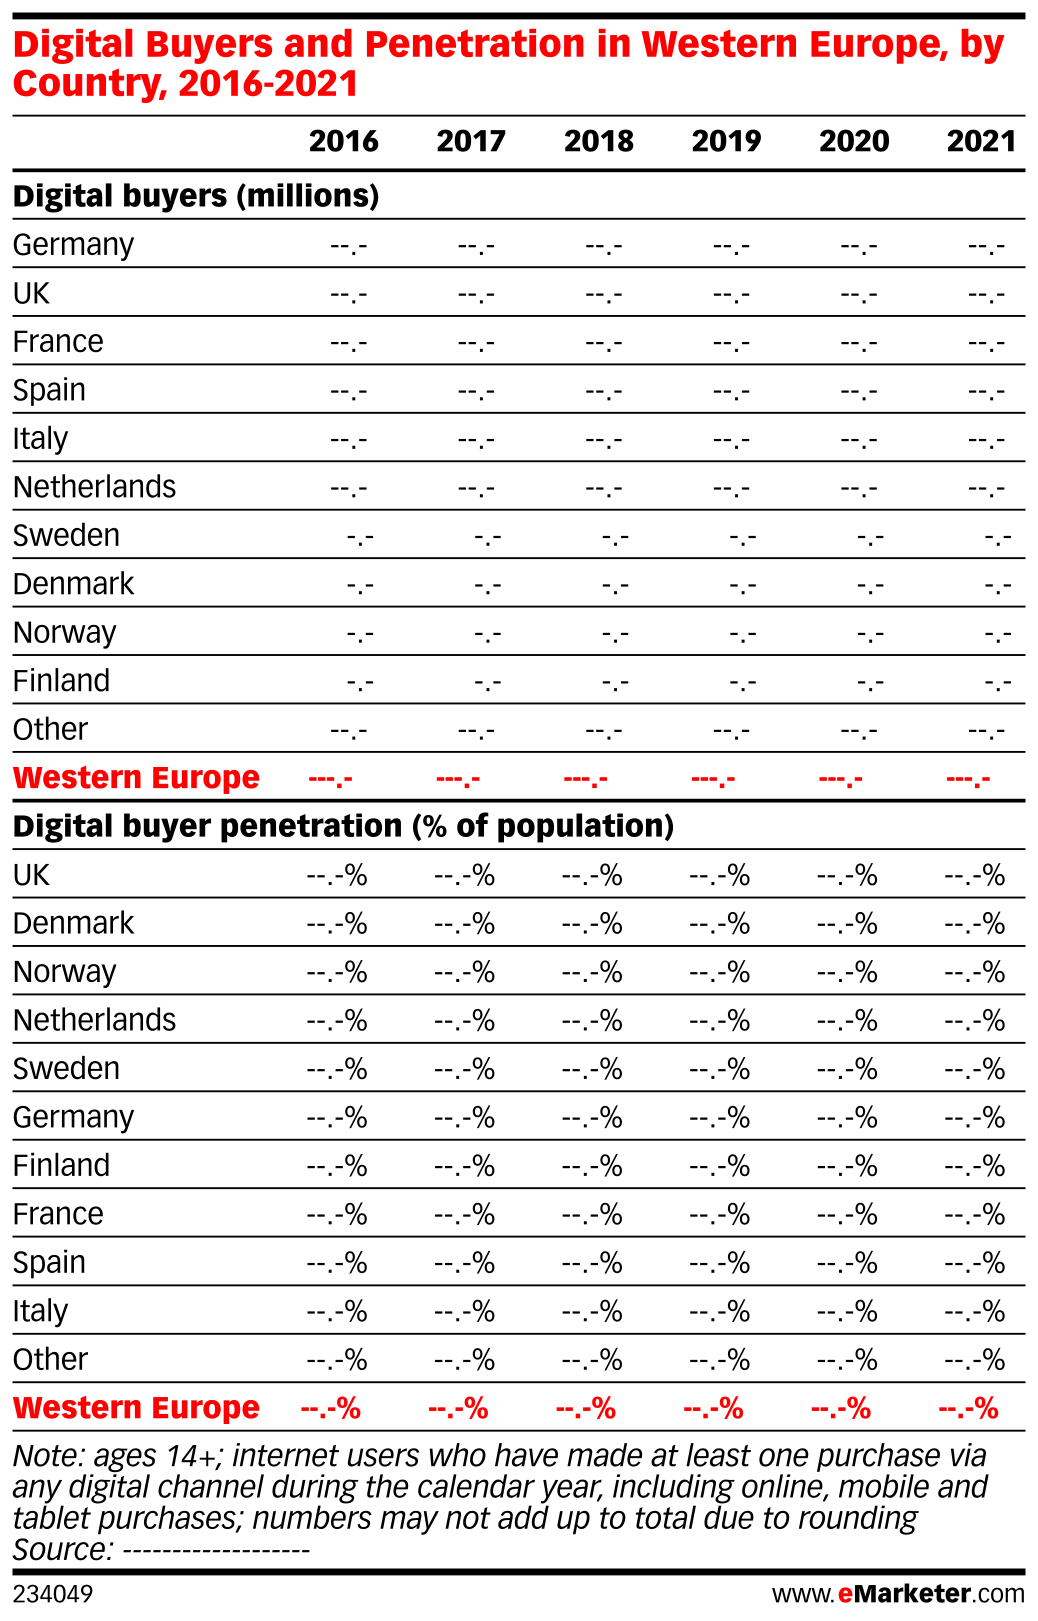 Digital Buyers and Penetration in Western Europe, by Country, 2016-2021